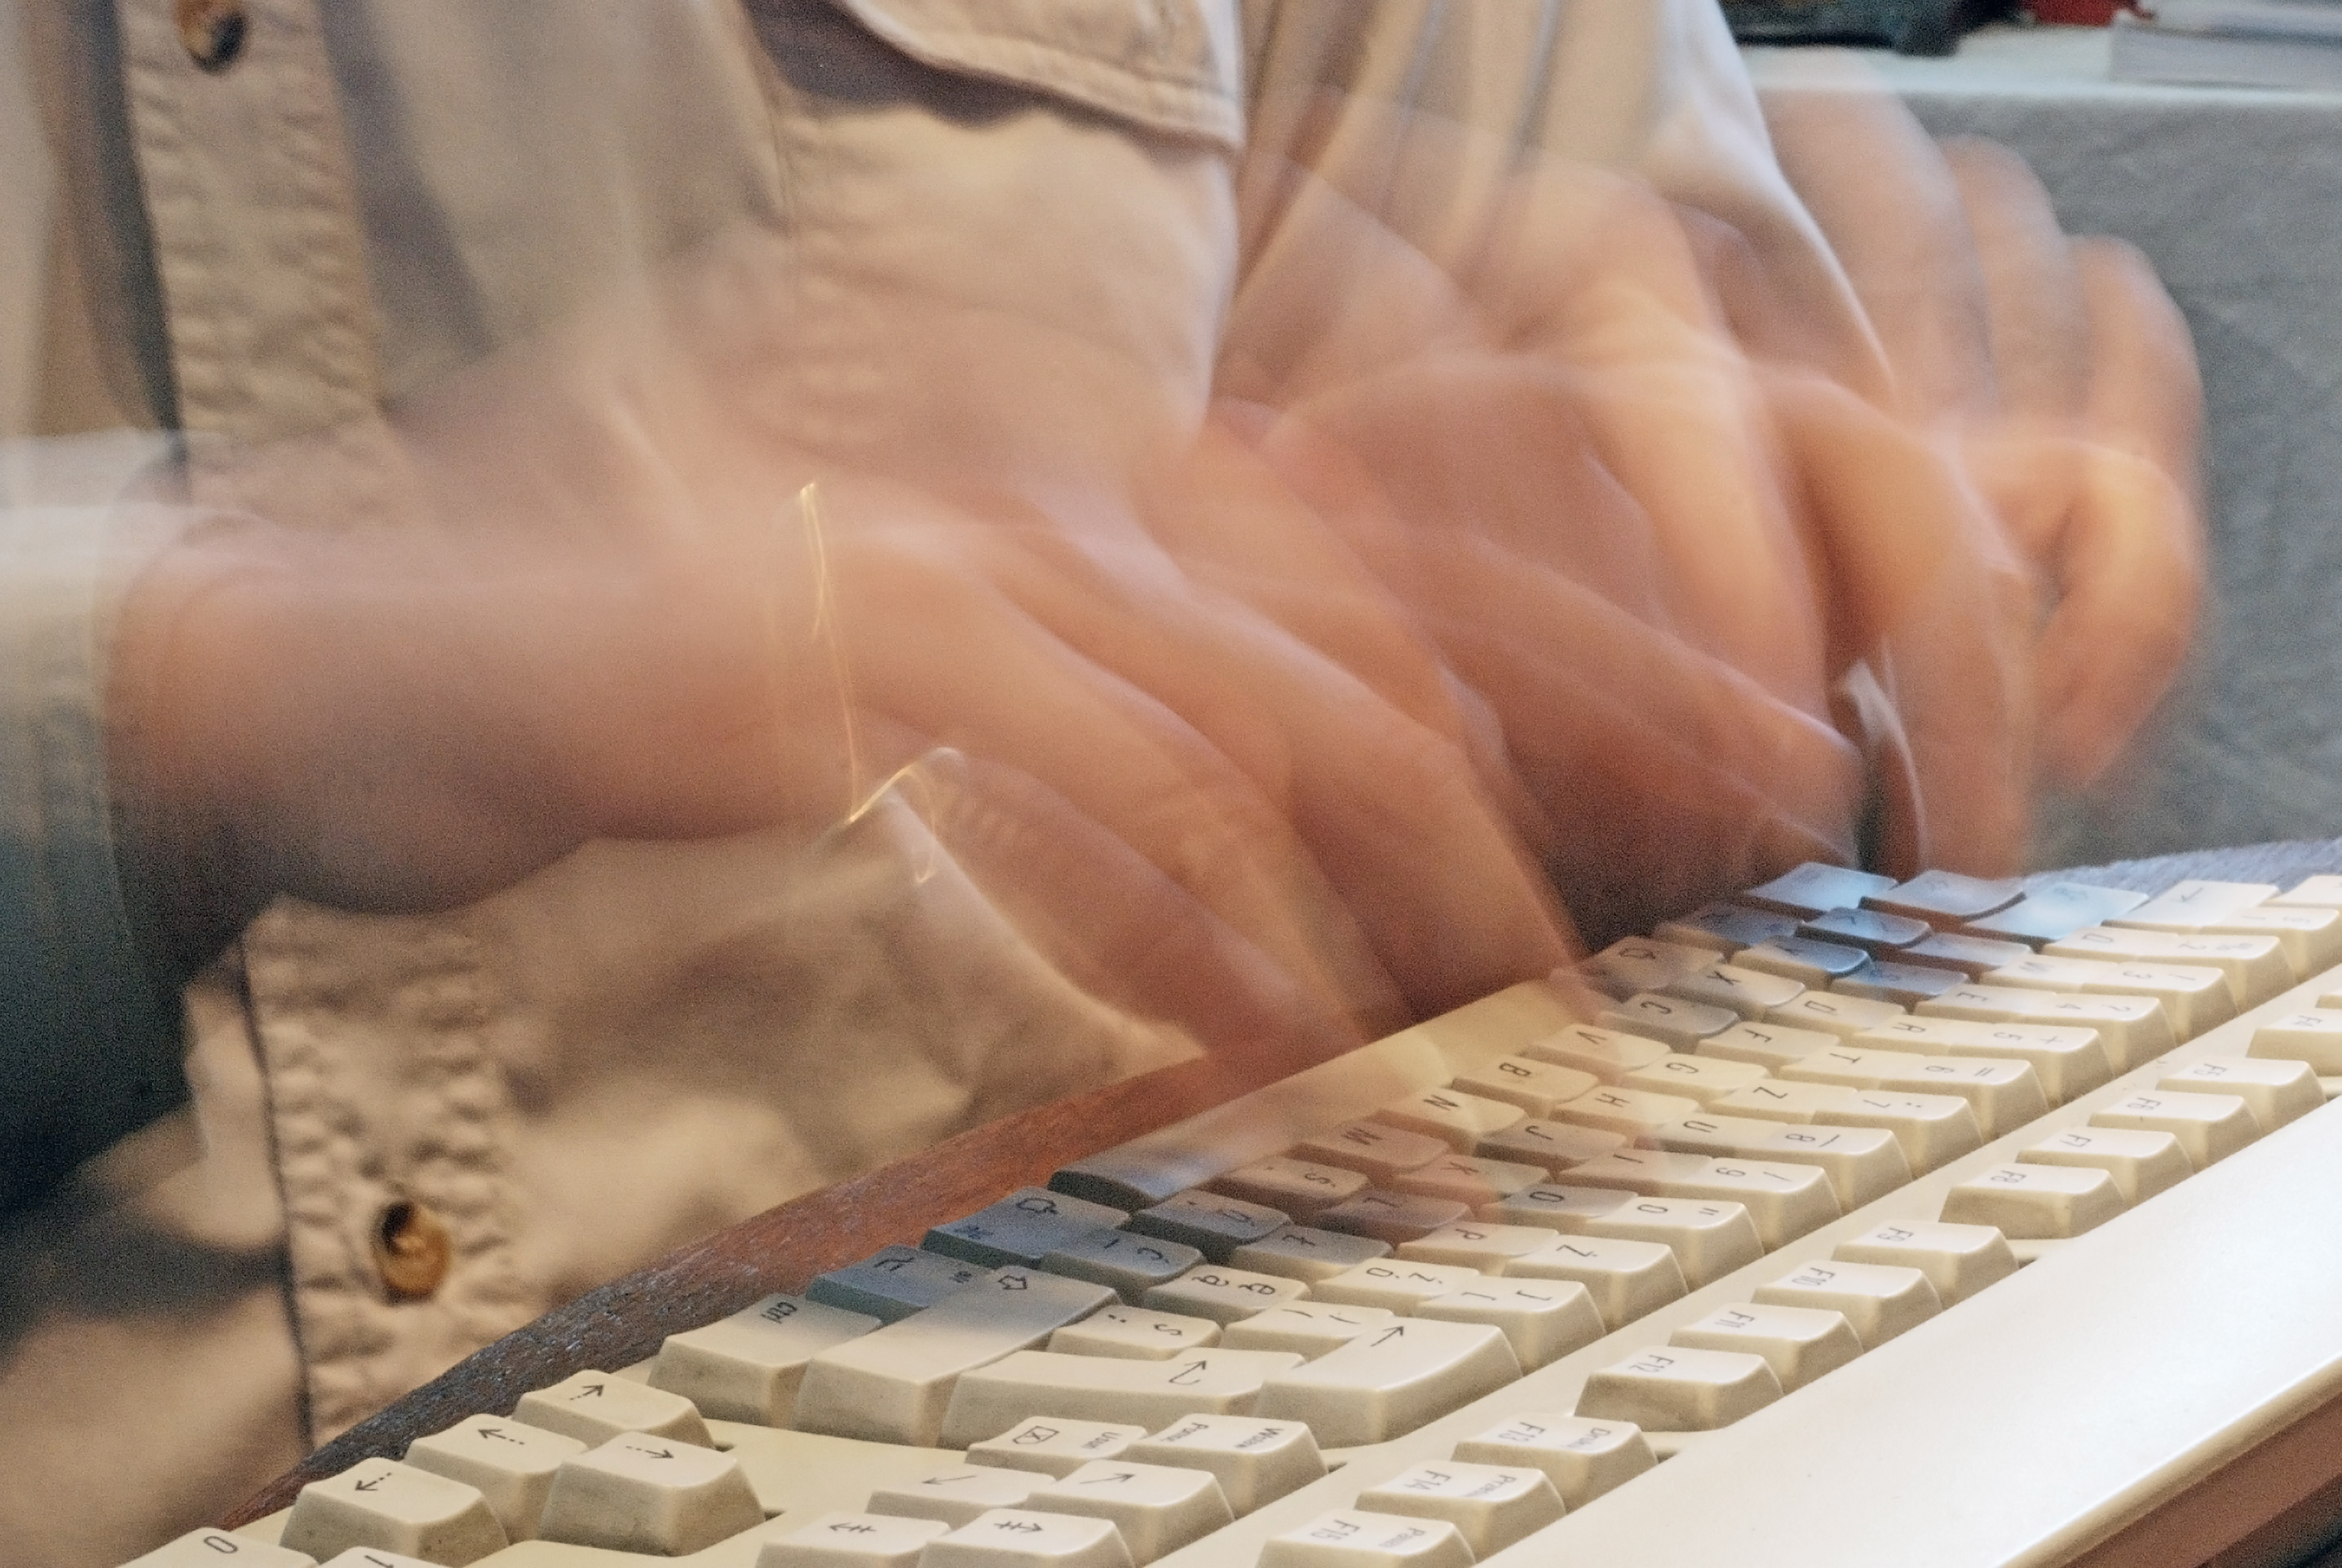 fast writer. Photo of hands on a keyboard showing movement effect